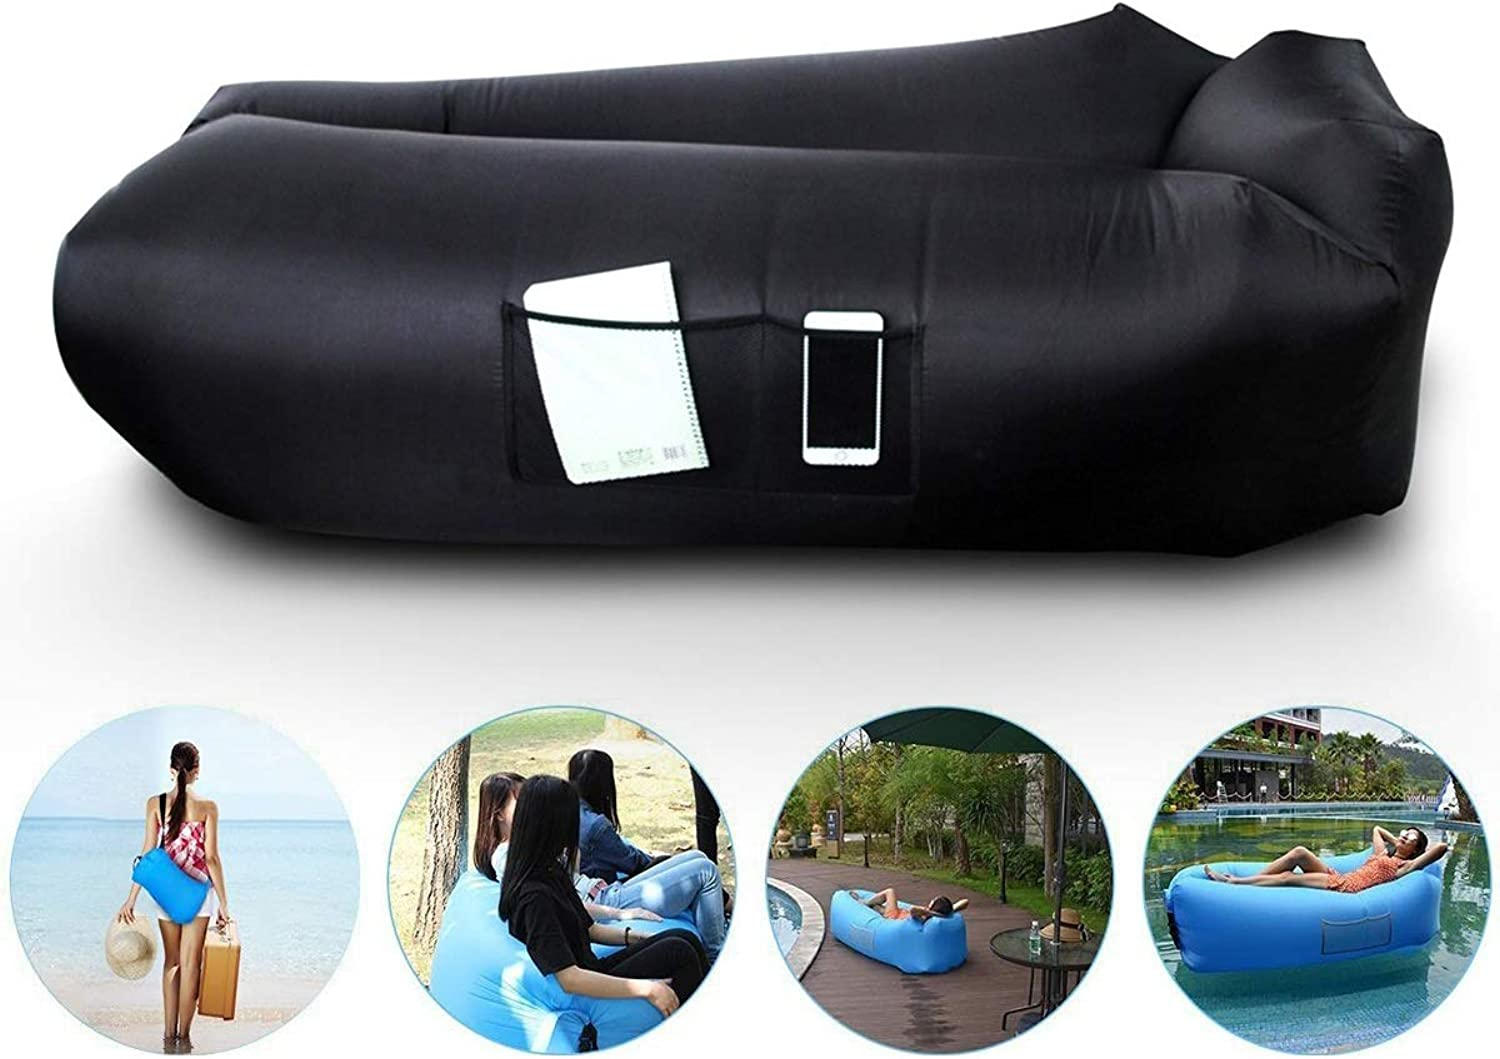 Inflatable Lounger Hammock Air Sofa Black, Portable for Ideal Couch for Backyard Lakeside Beach Traveling Camping Picnics Music Festivals Water Proof Design